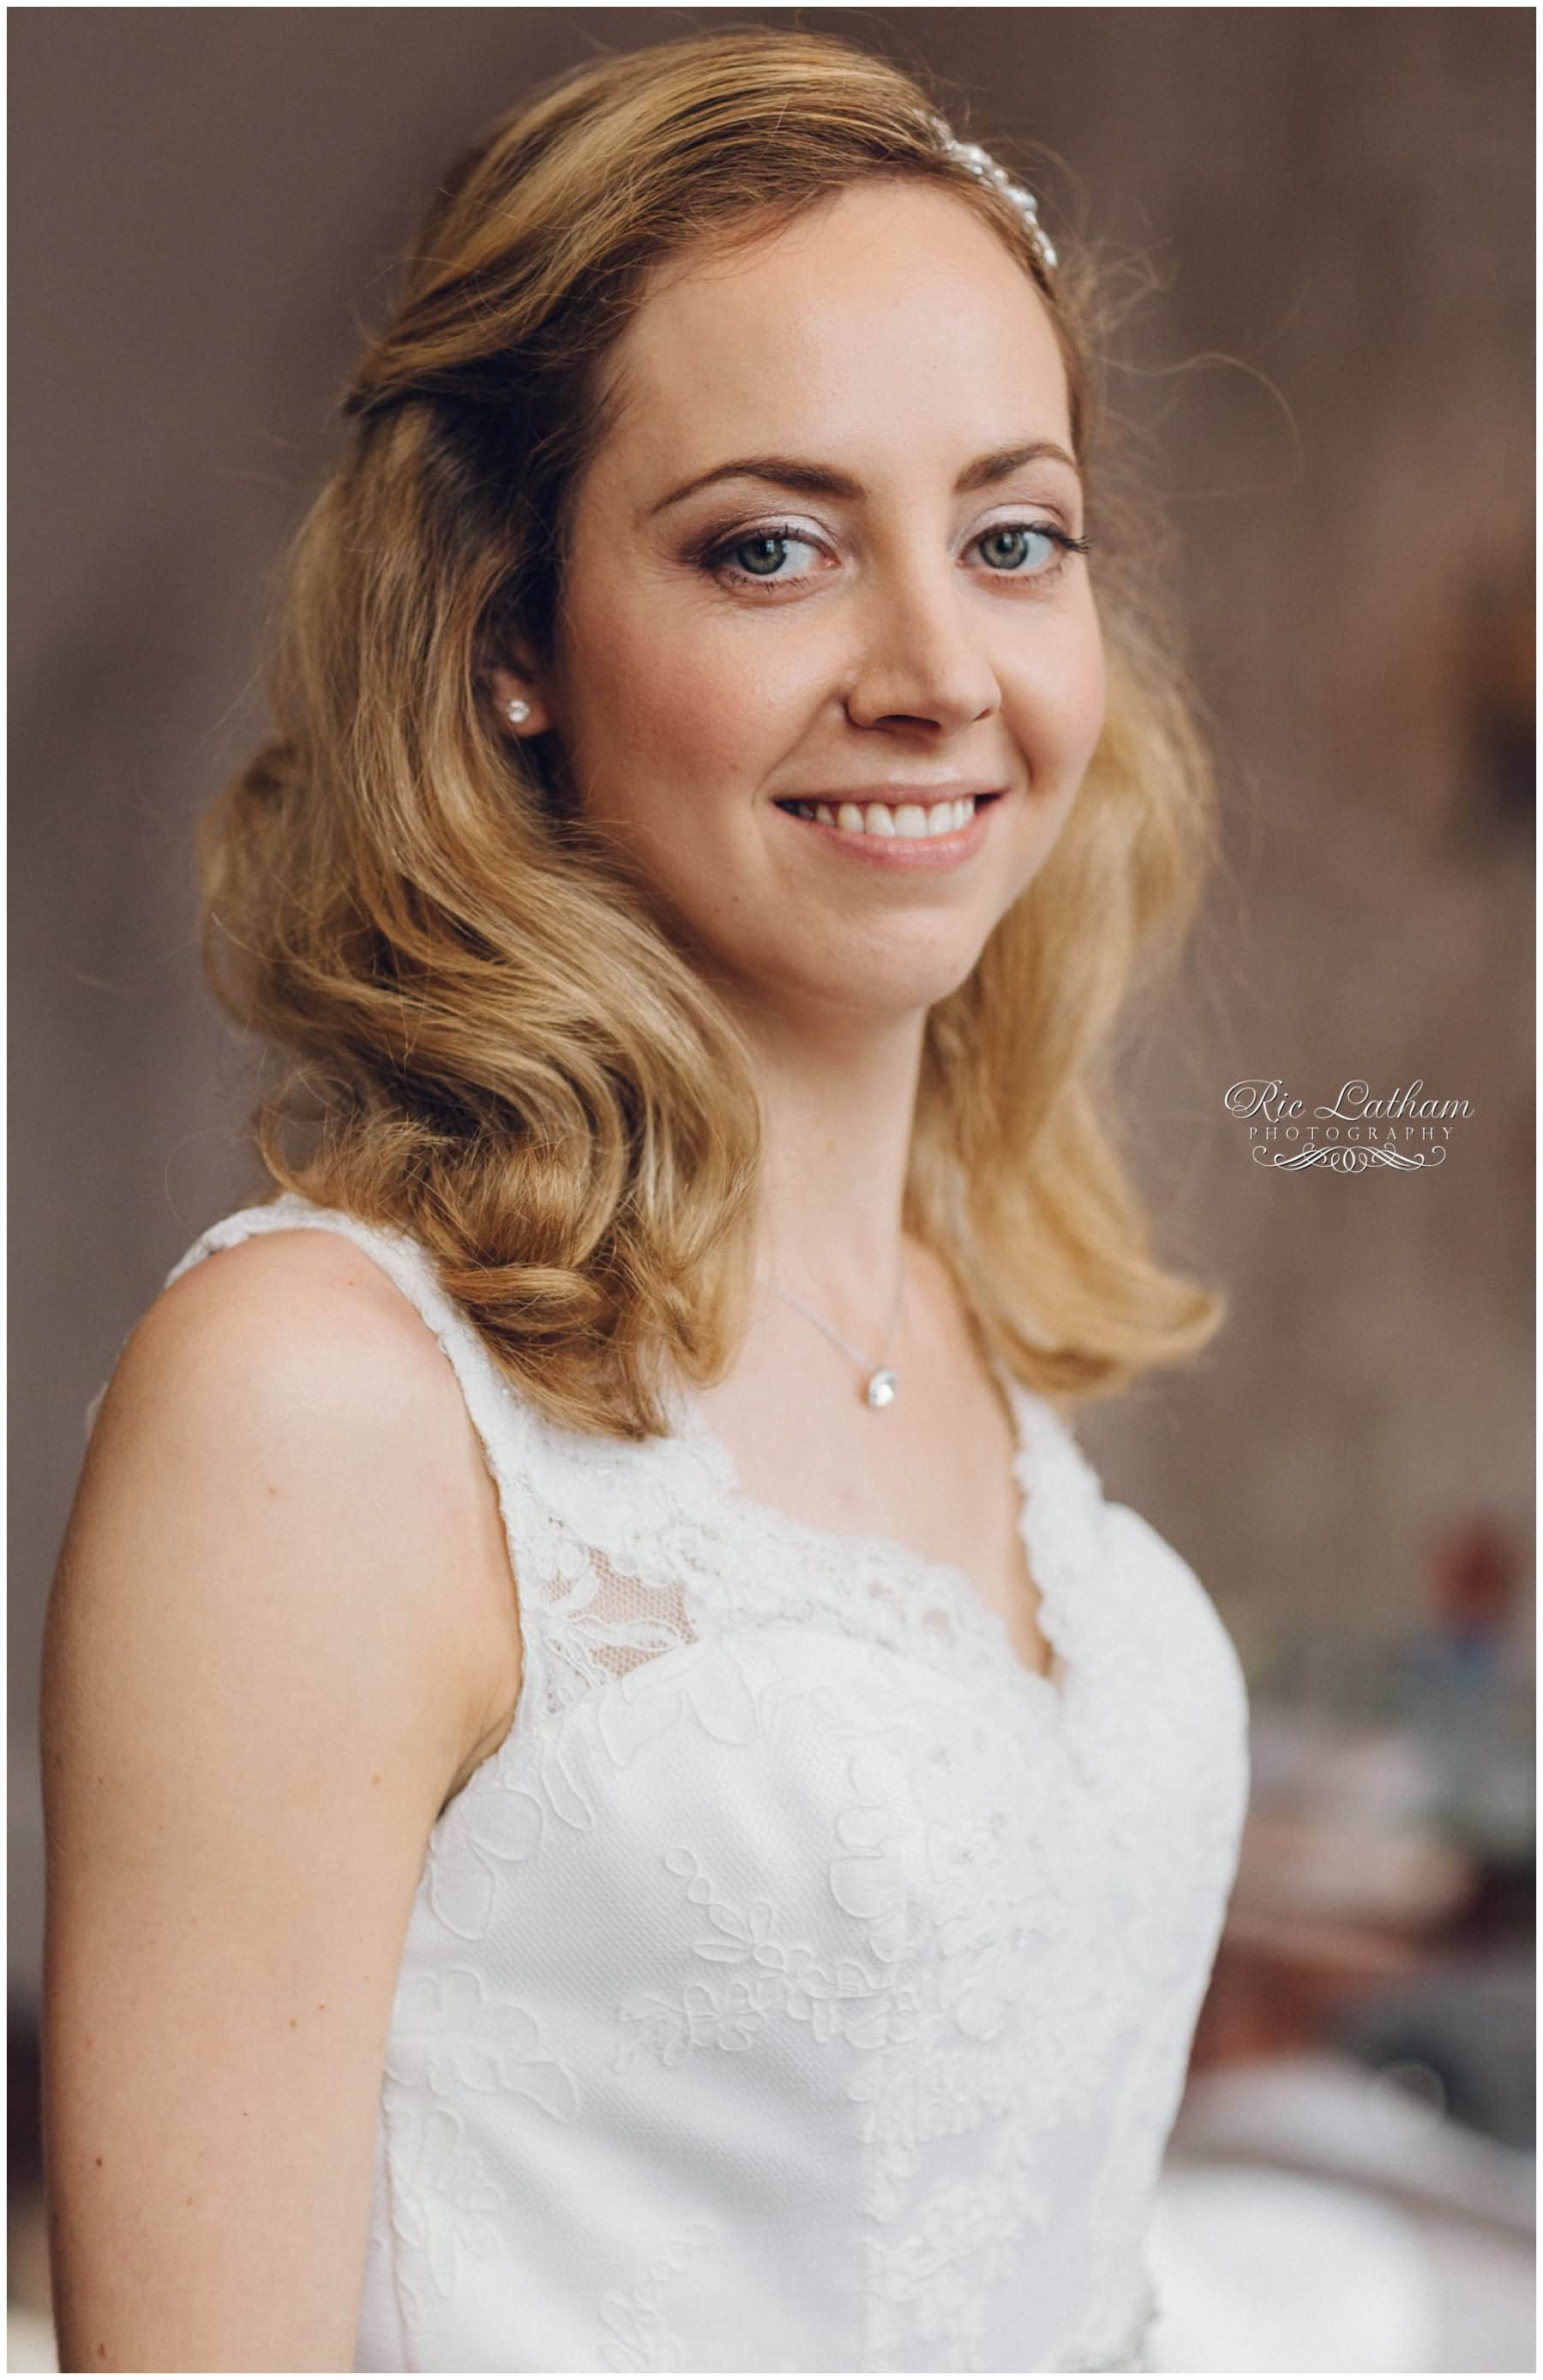 Brides portrait before getting married